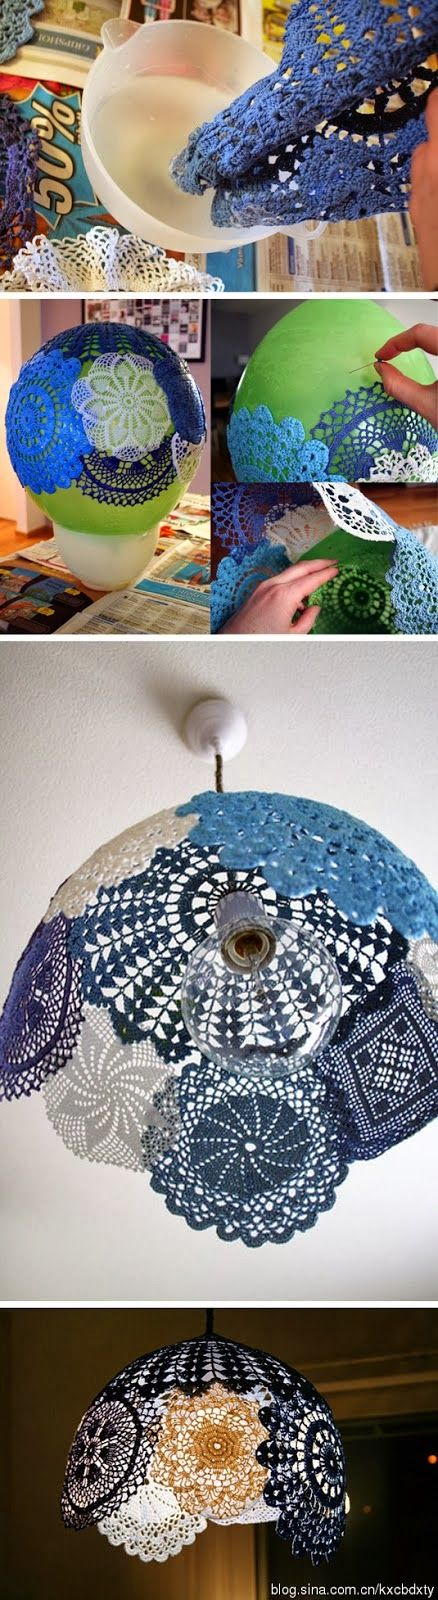 Special Crafts: How To Make Mediterranean-Style Lace Lamp